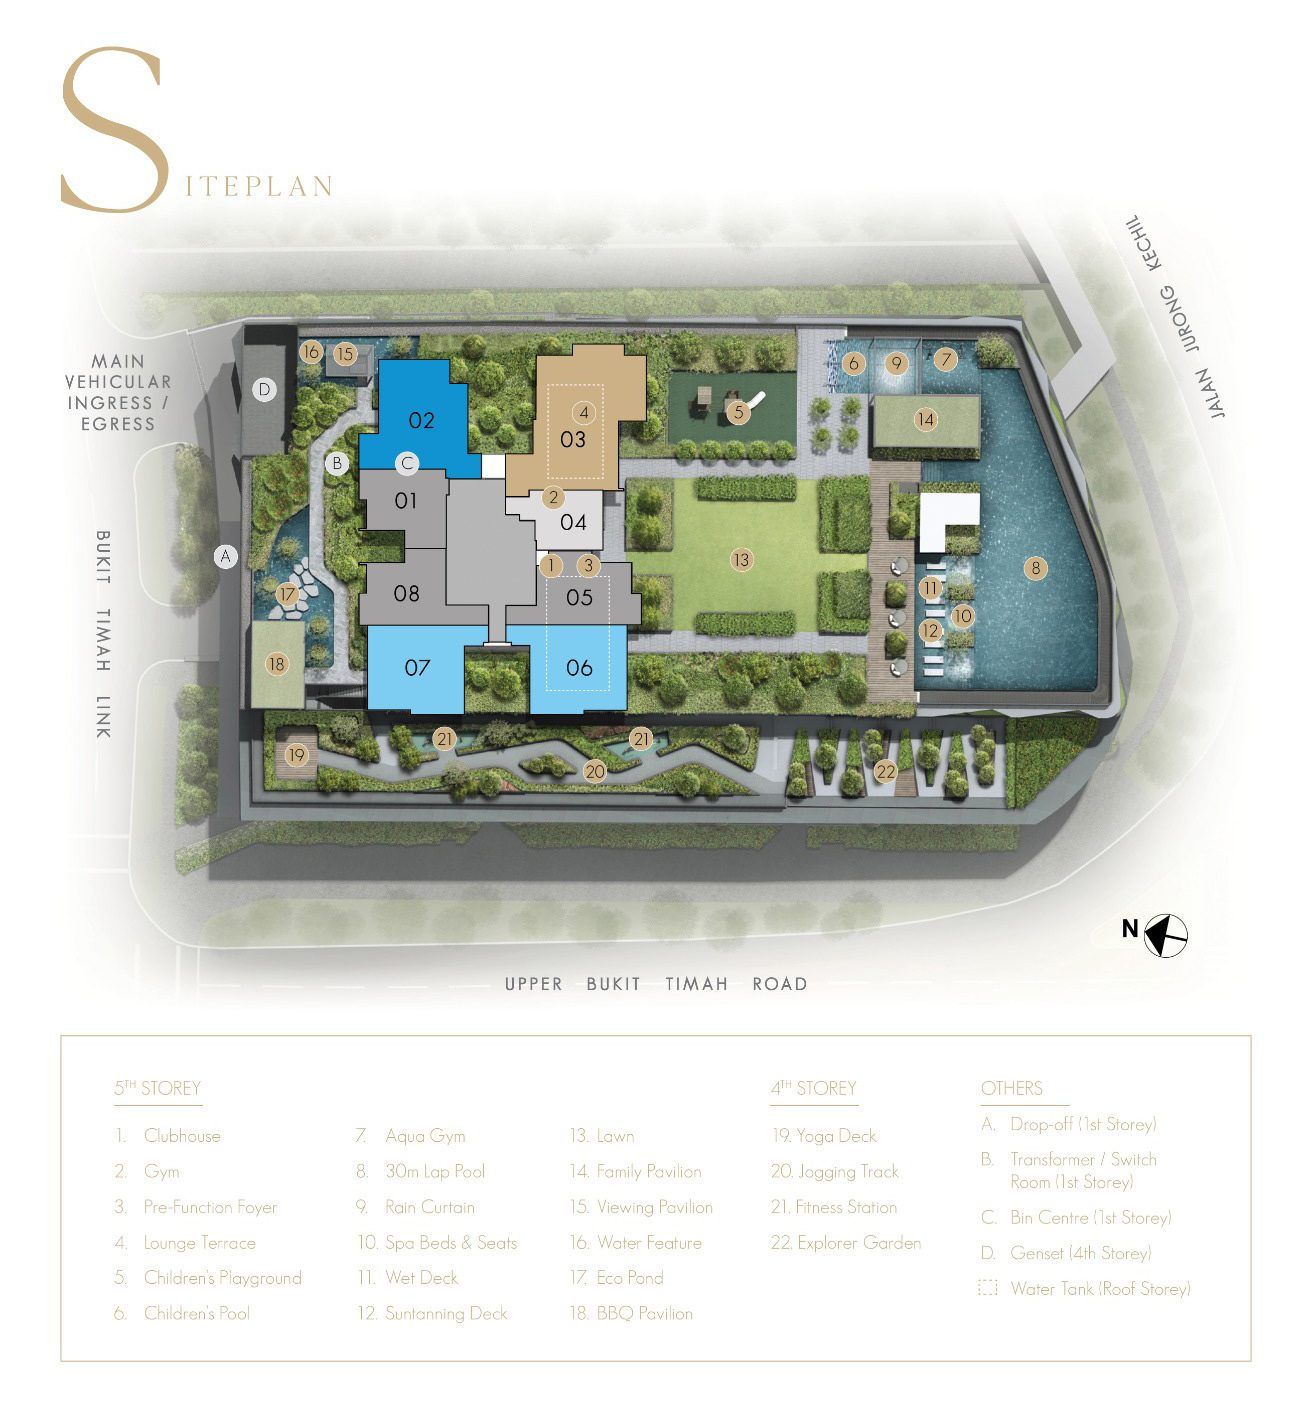 The-Linq-@-Beauty-World-new-condo-Singapore-site-plan-e1601286227252.jpg